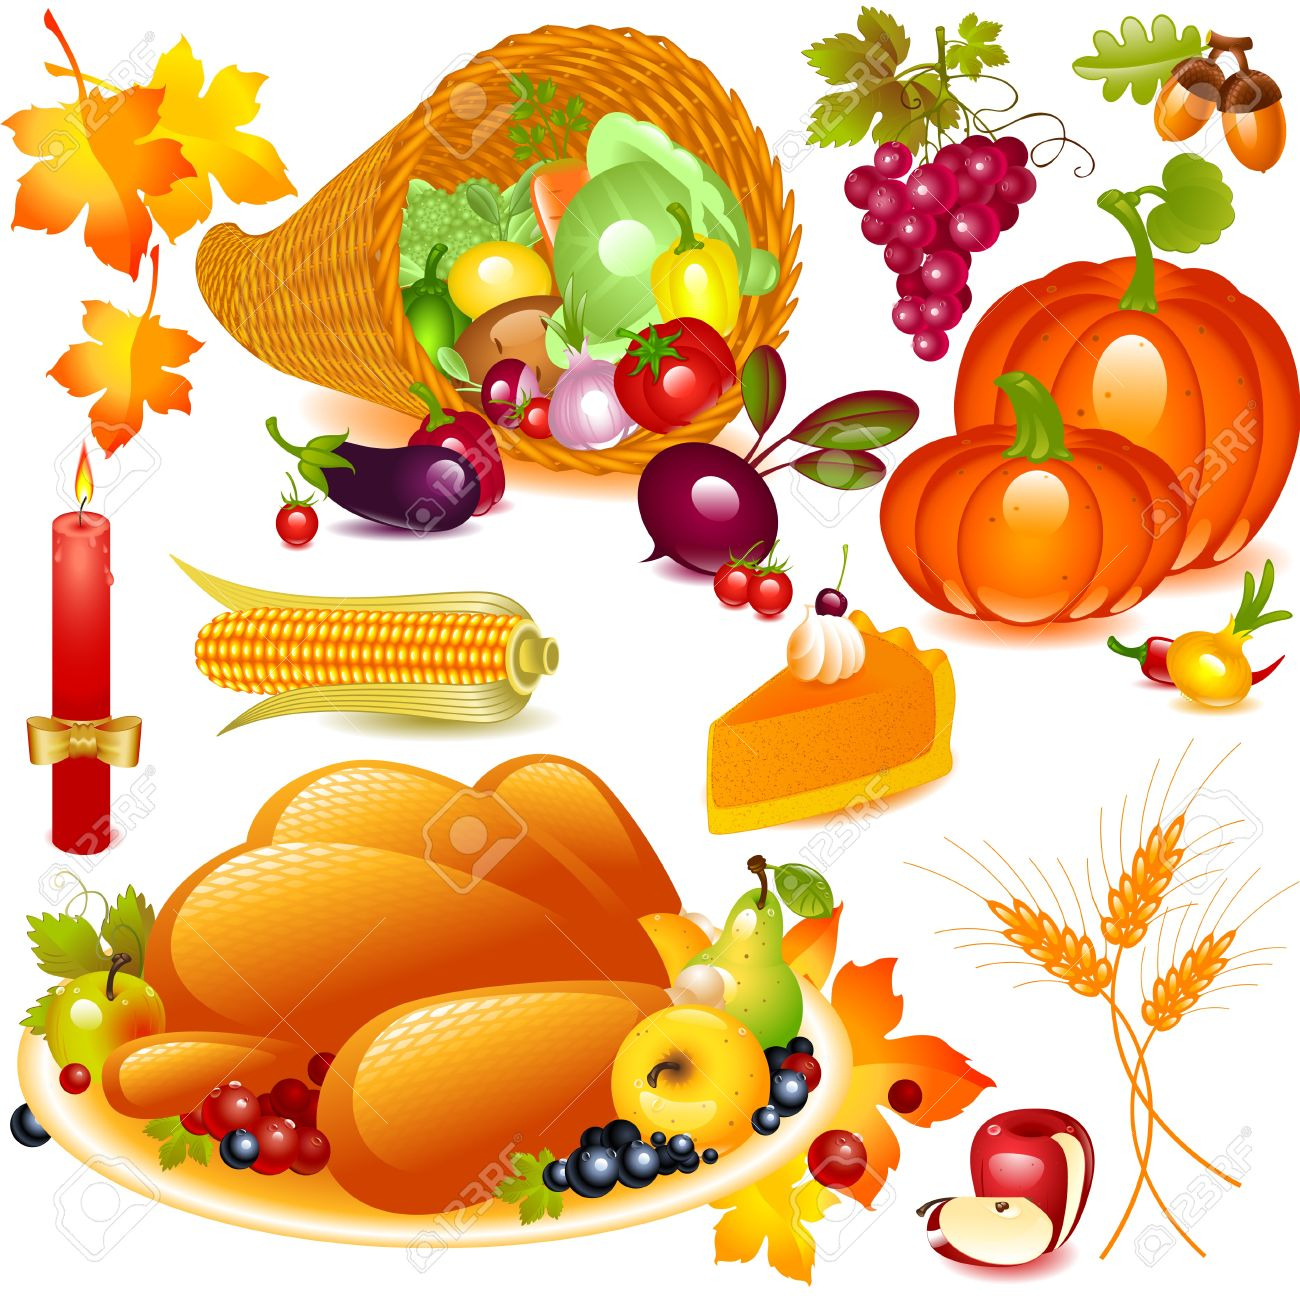 Thanksgiving set. cornucopia with pumpkin and other vegetables, and traditional elements of Thanksgiving. Vector graphics objects isolated on white background - 11236914